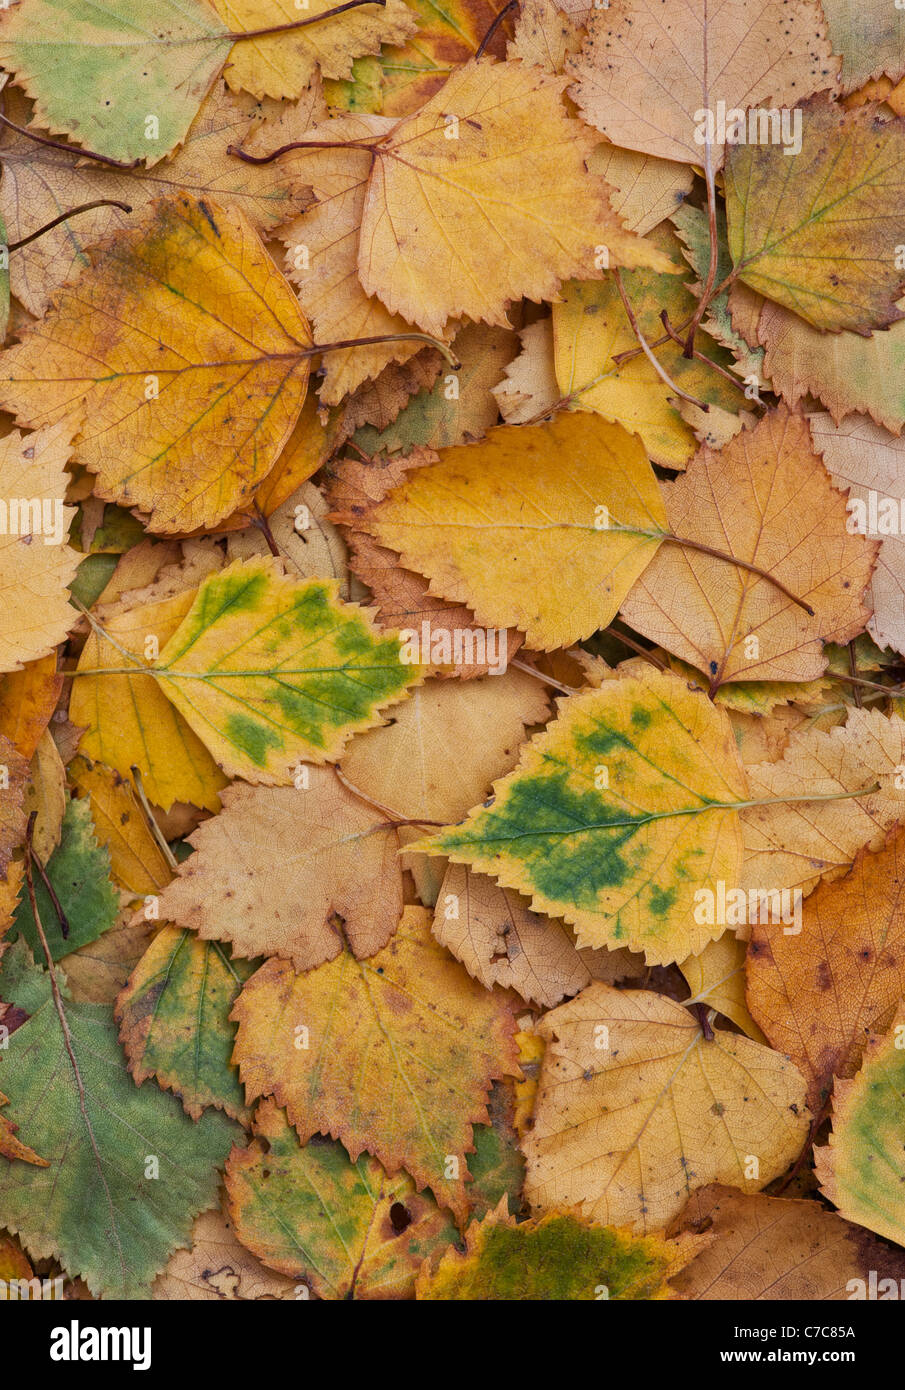 Betula pendular . Silver birch leaves in autumn - Stock Image